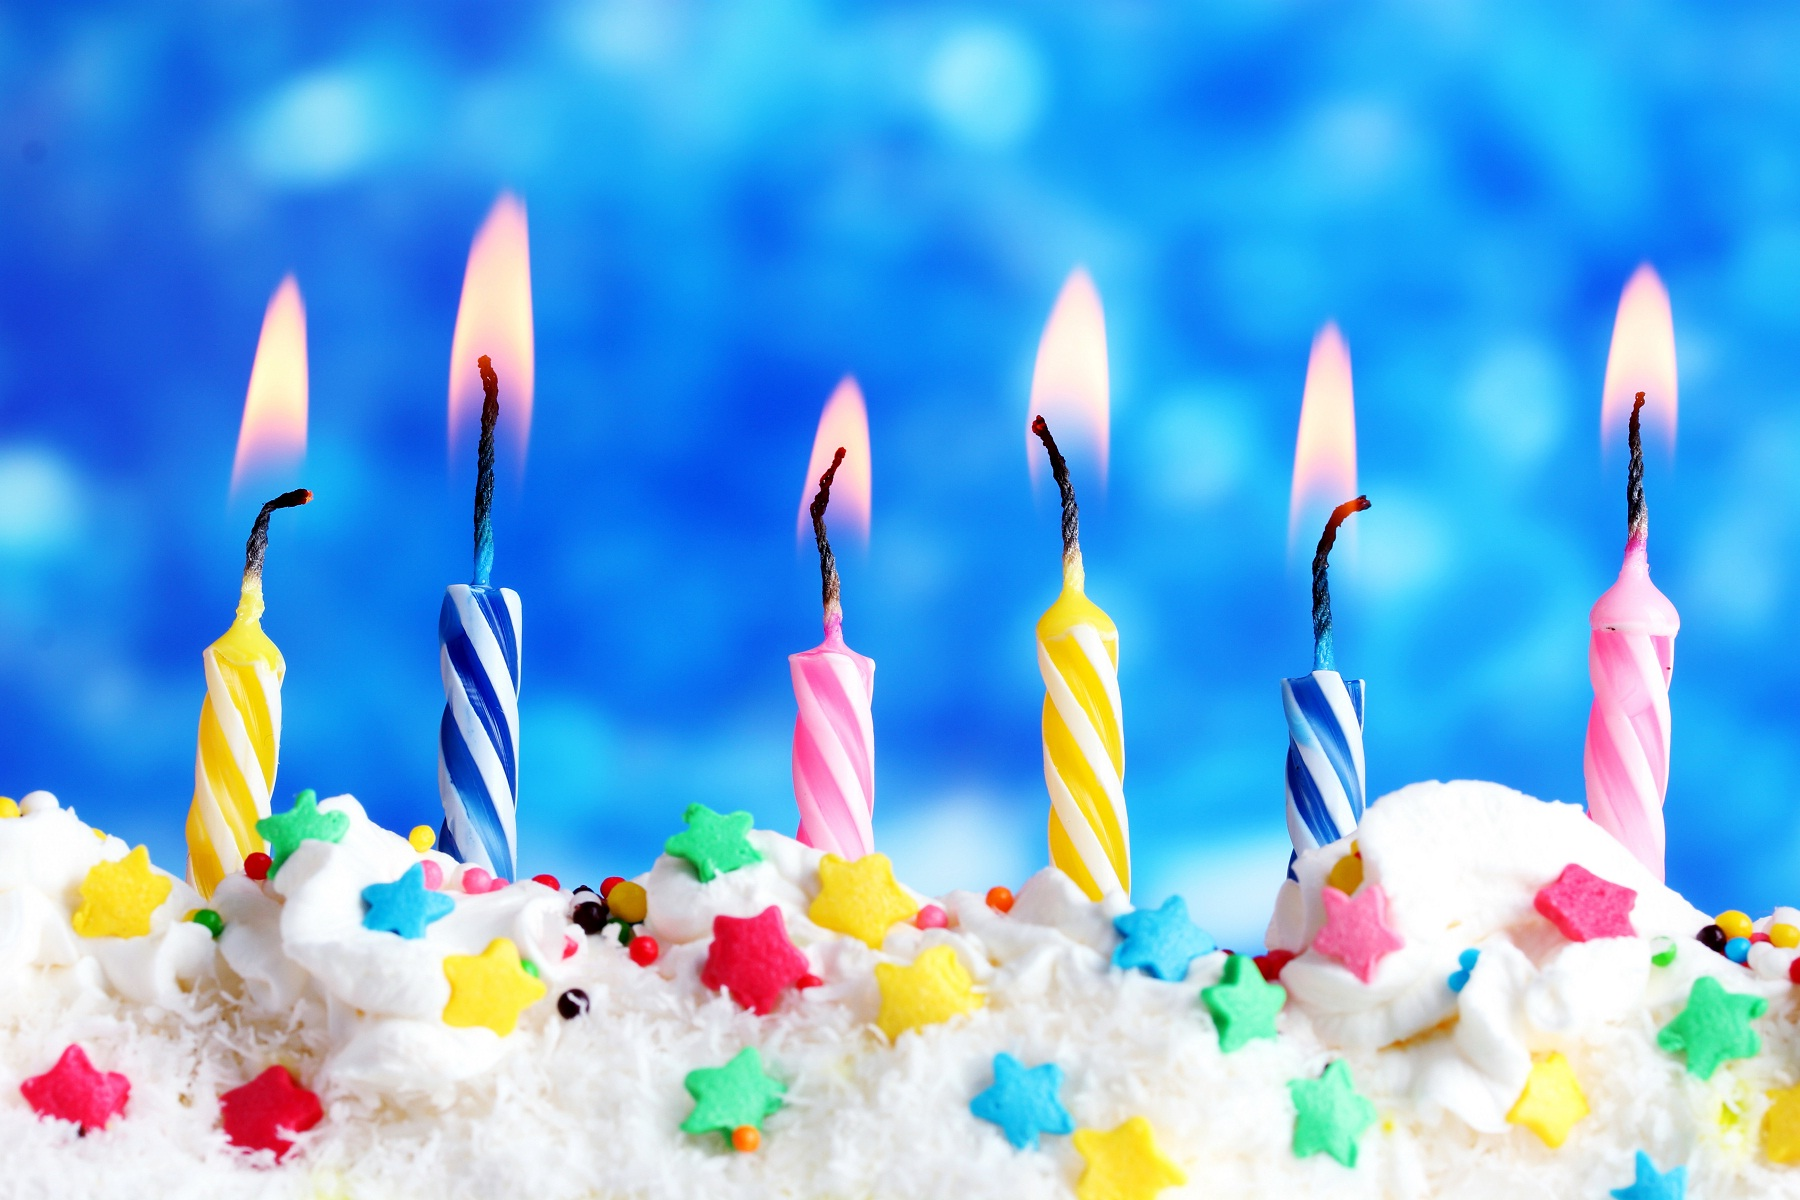 birthday wallpaper hd ; Happy-birthday-candles-on-cake